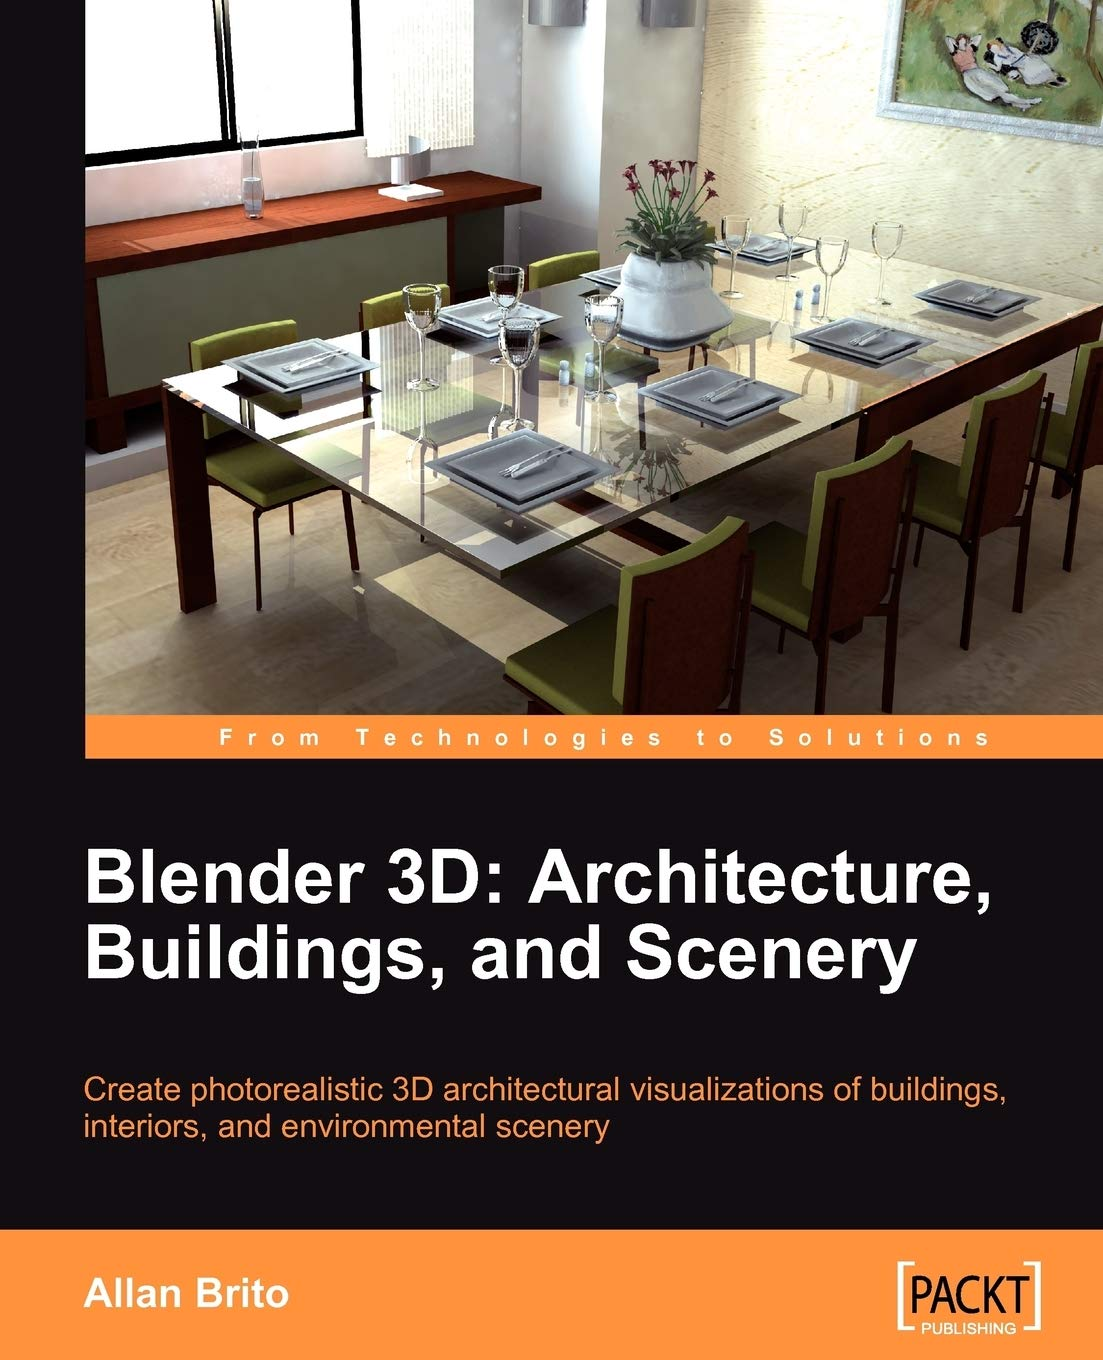 Blender 3D Architecture, Buildings, and Scenery: Create